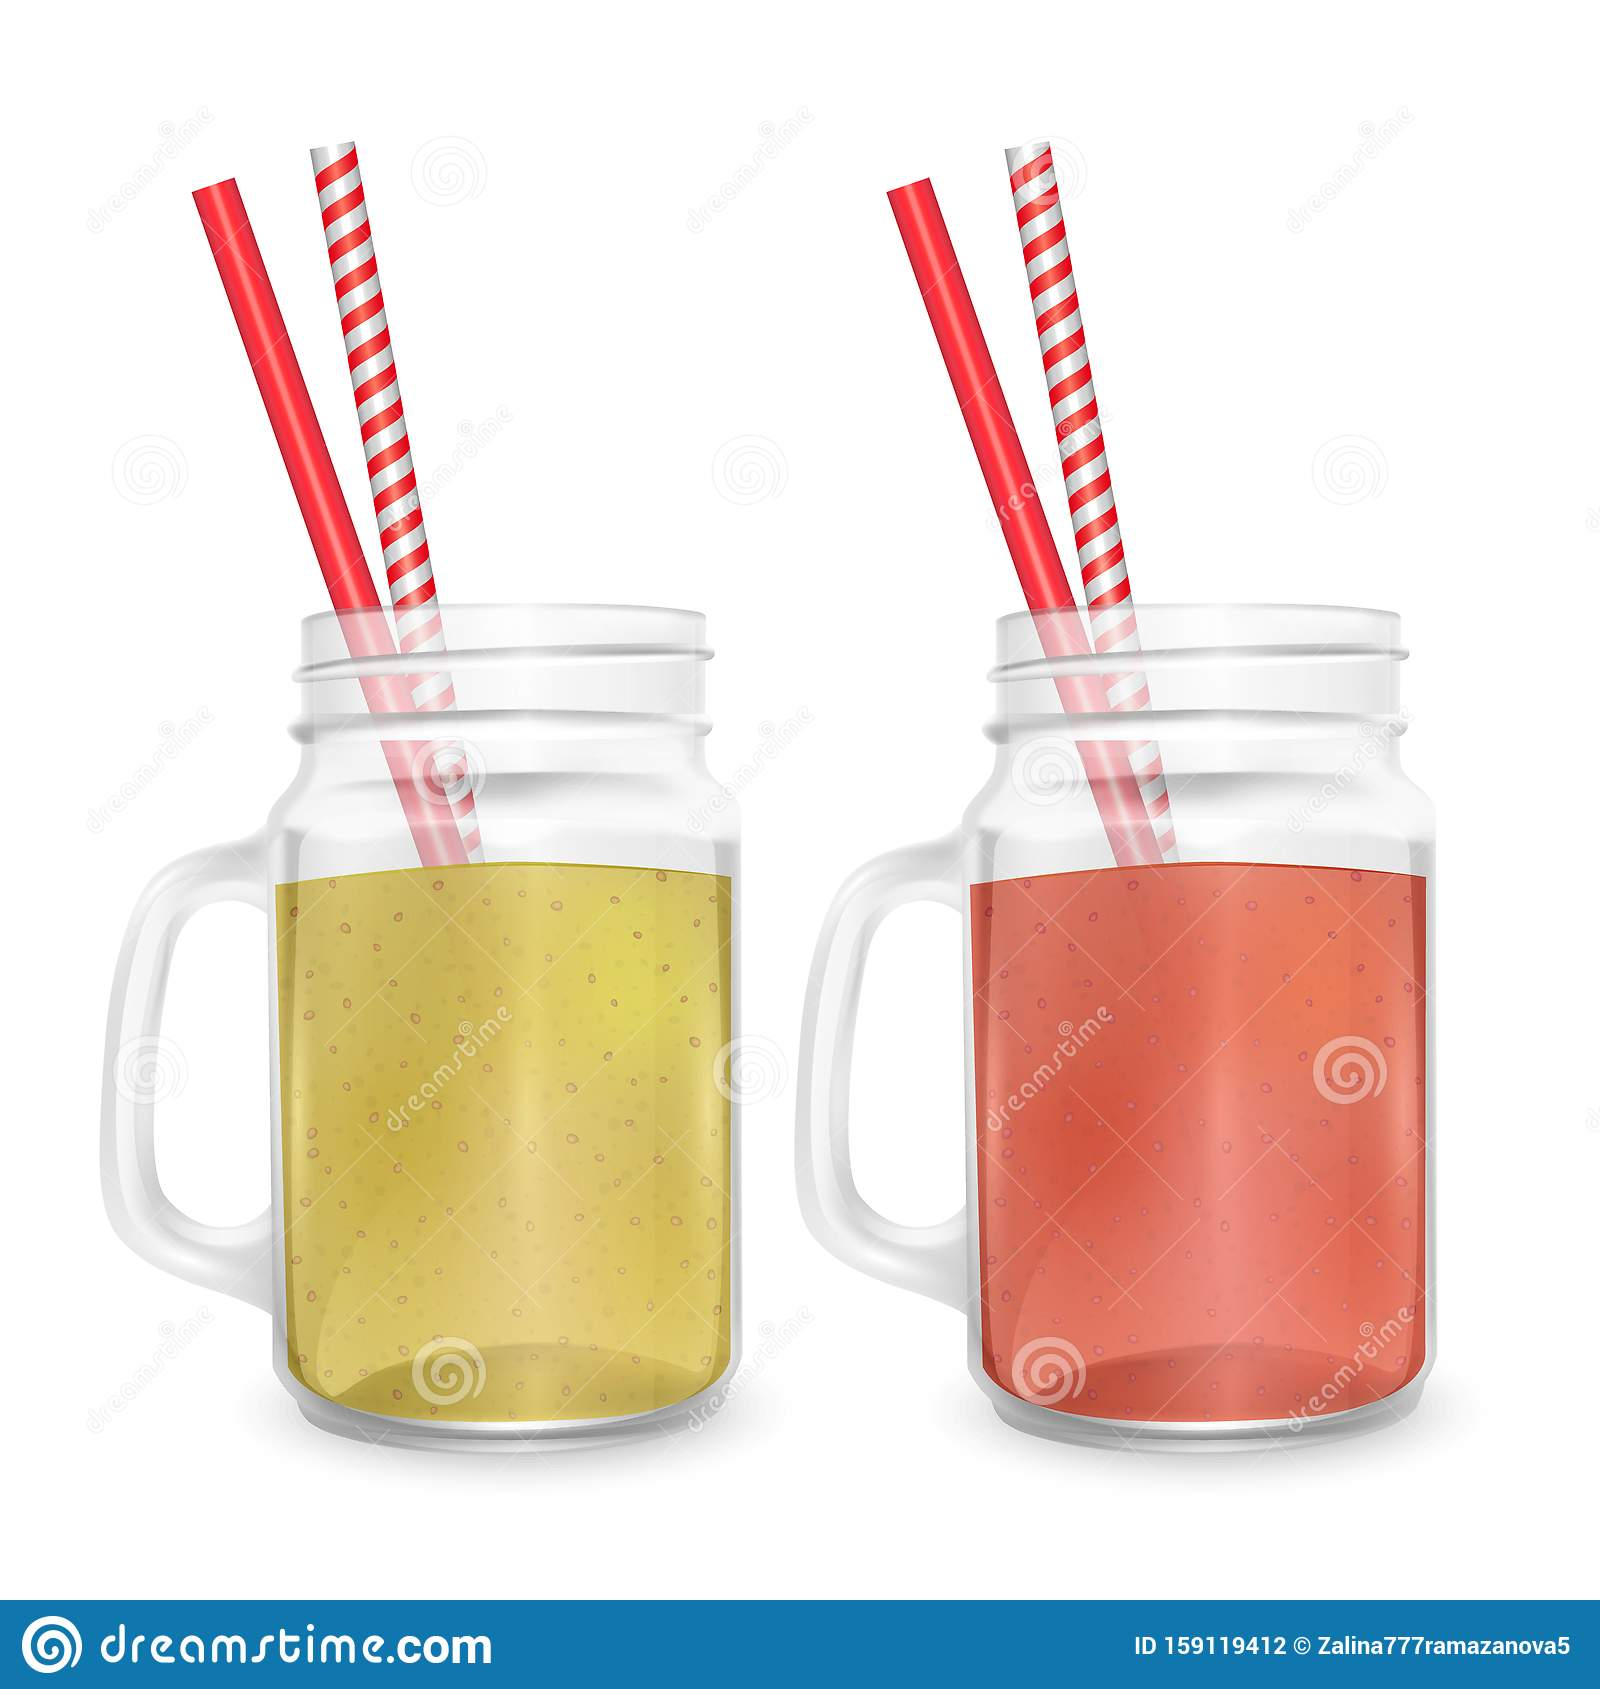 The jar for smoothies with striped straw for cocktails isolated on white background for advertising your products drinks in